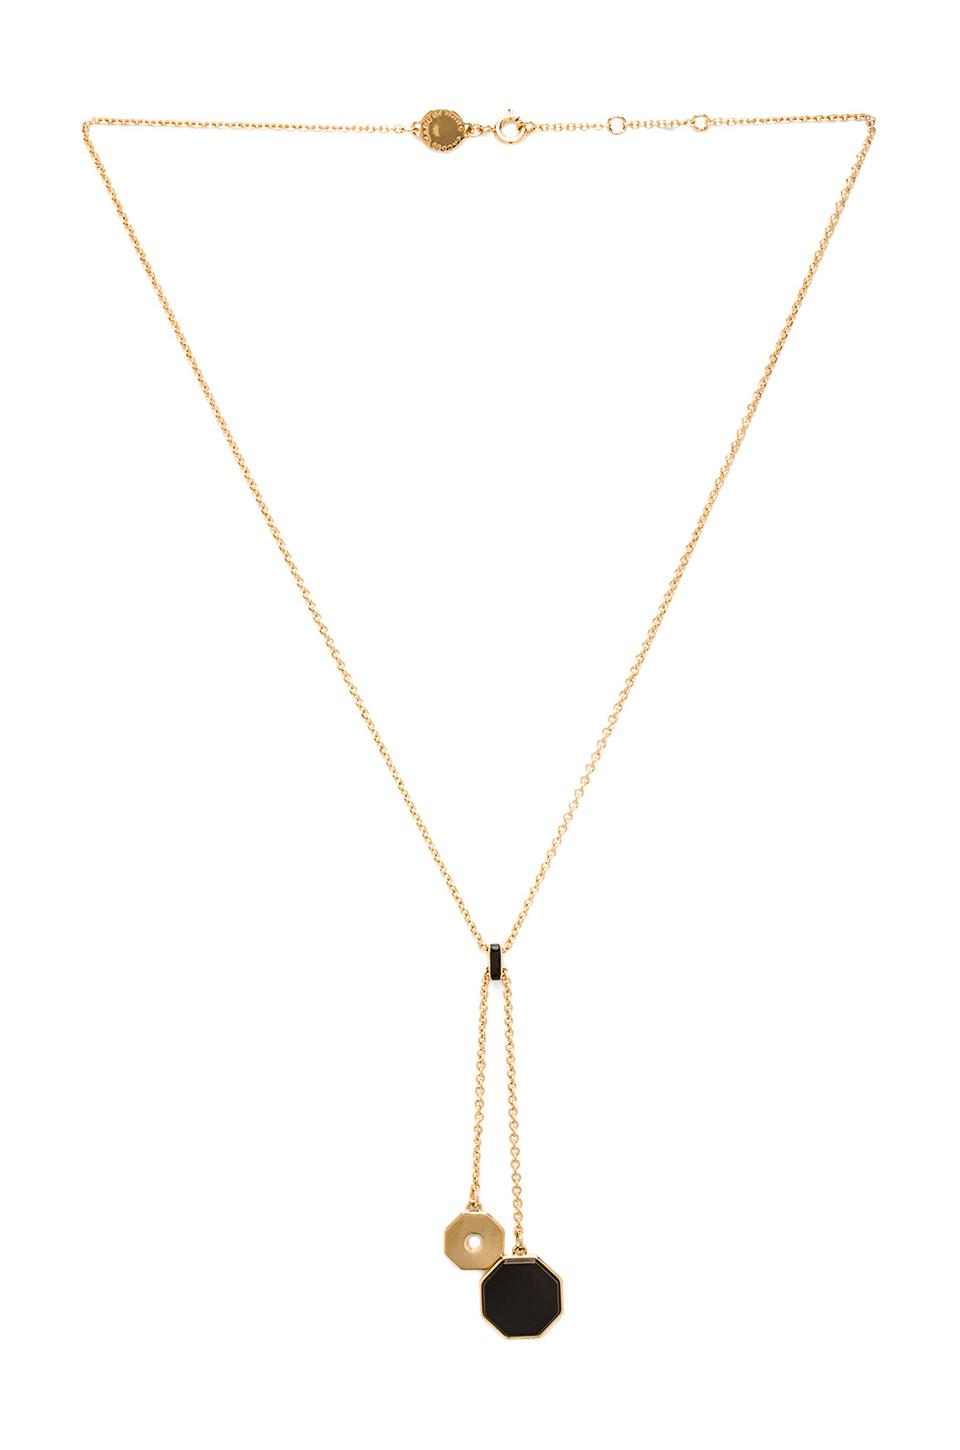 Marc by Marc Jacobs Octi Balancing Bolts Necklace in Black & Oro